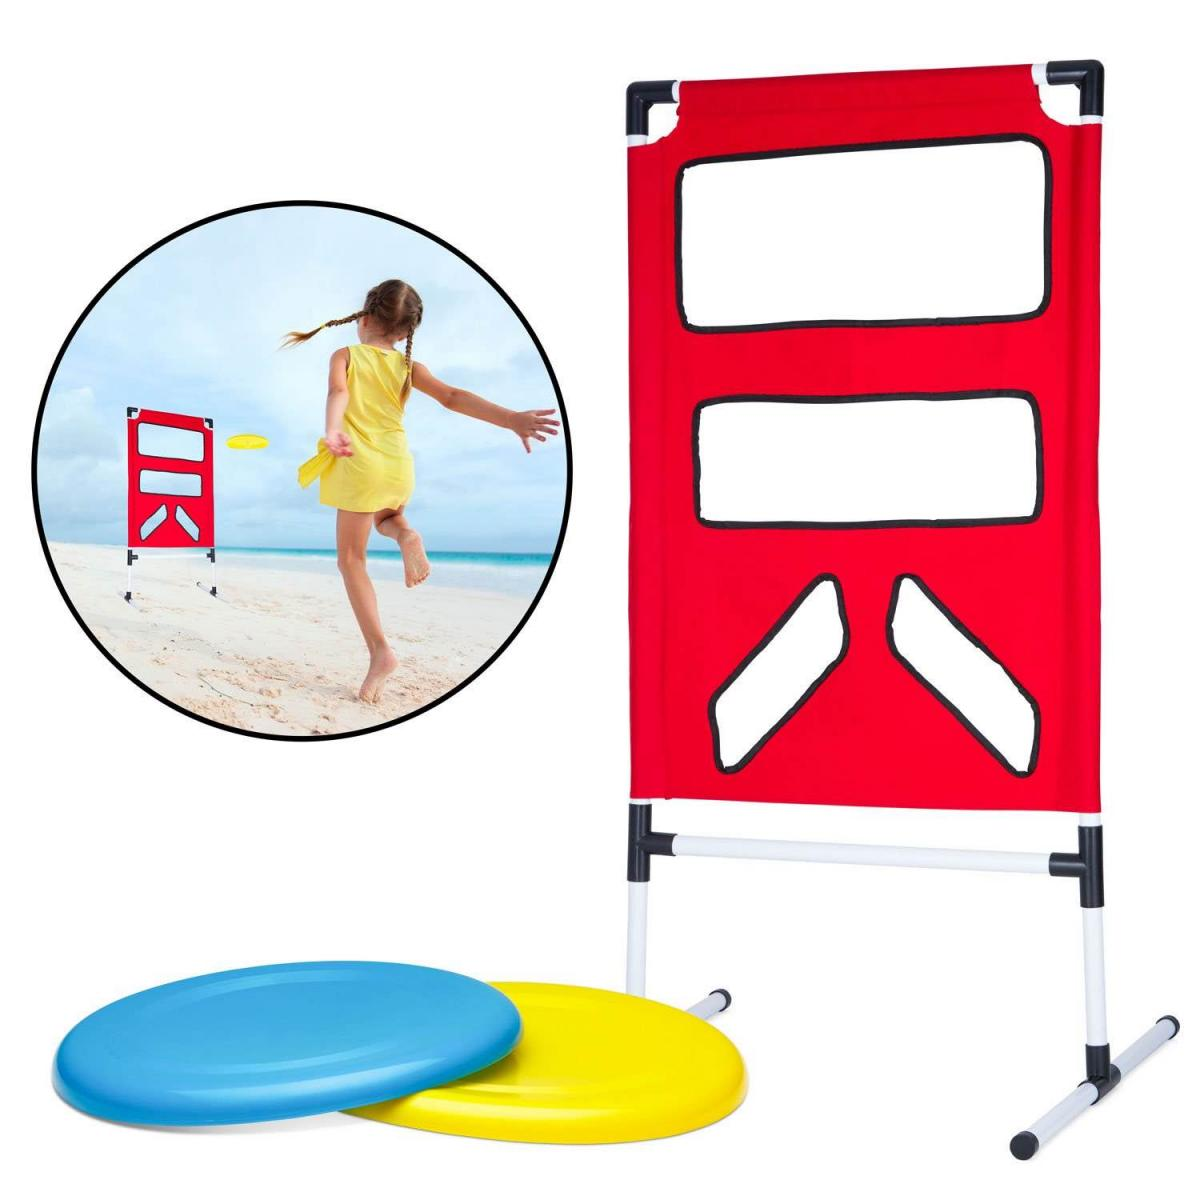 Outdoor Backyard Disc Toss Target Lawn Game